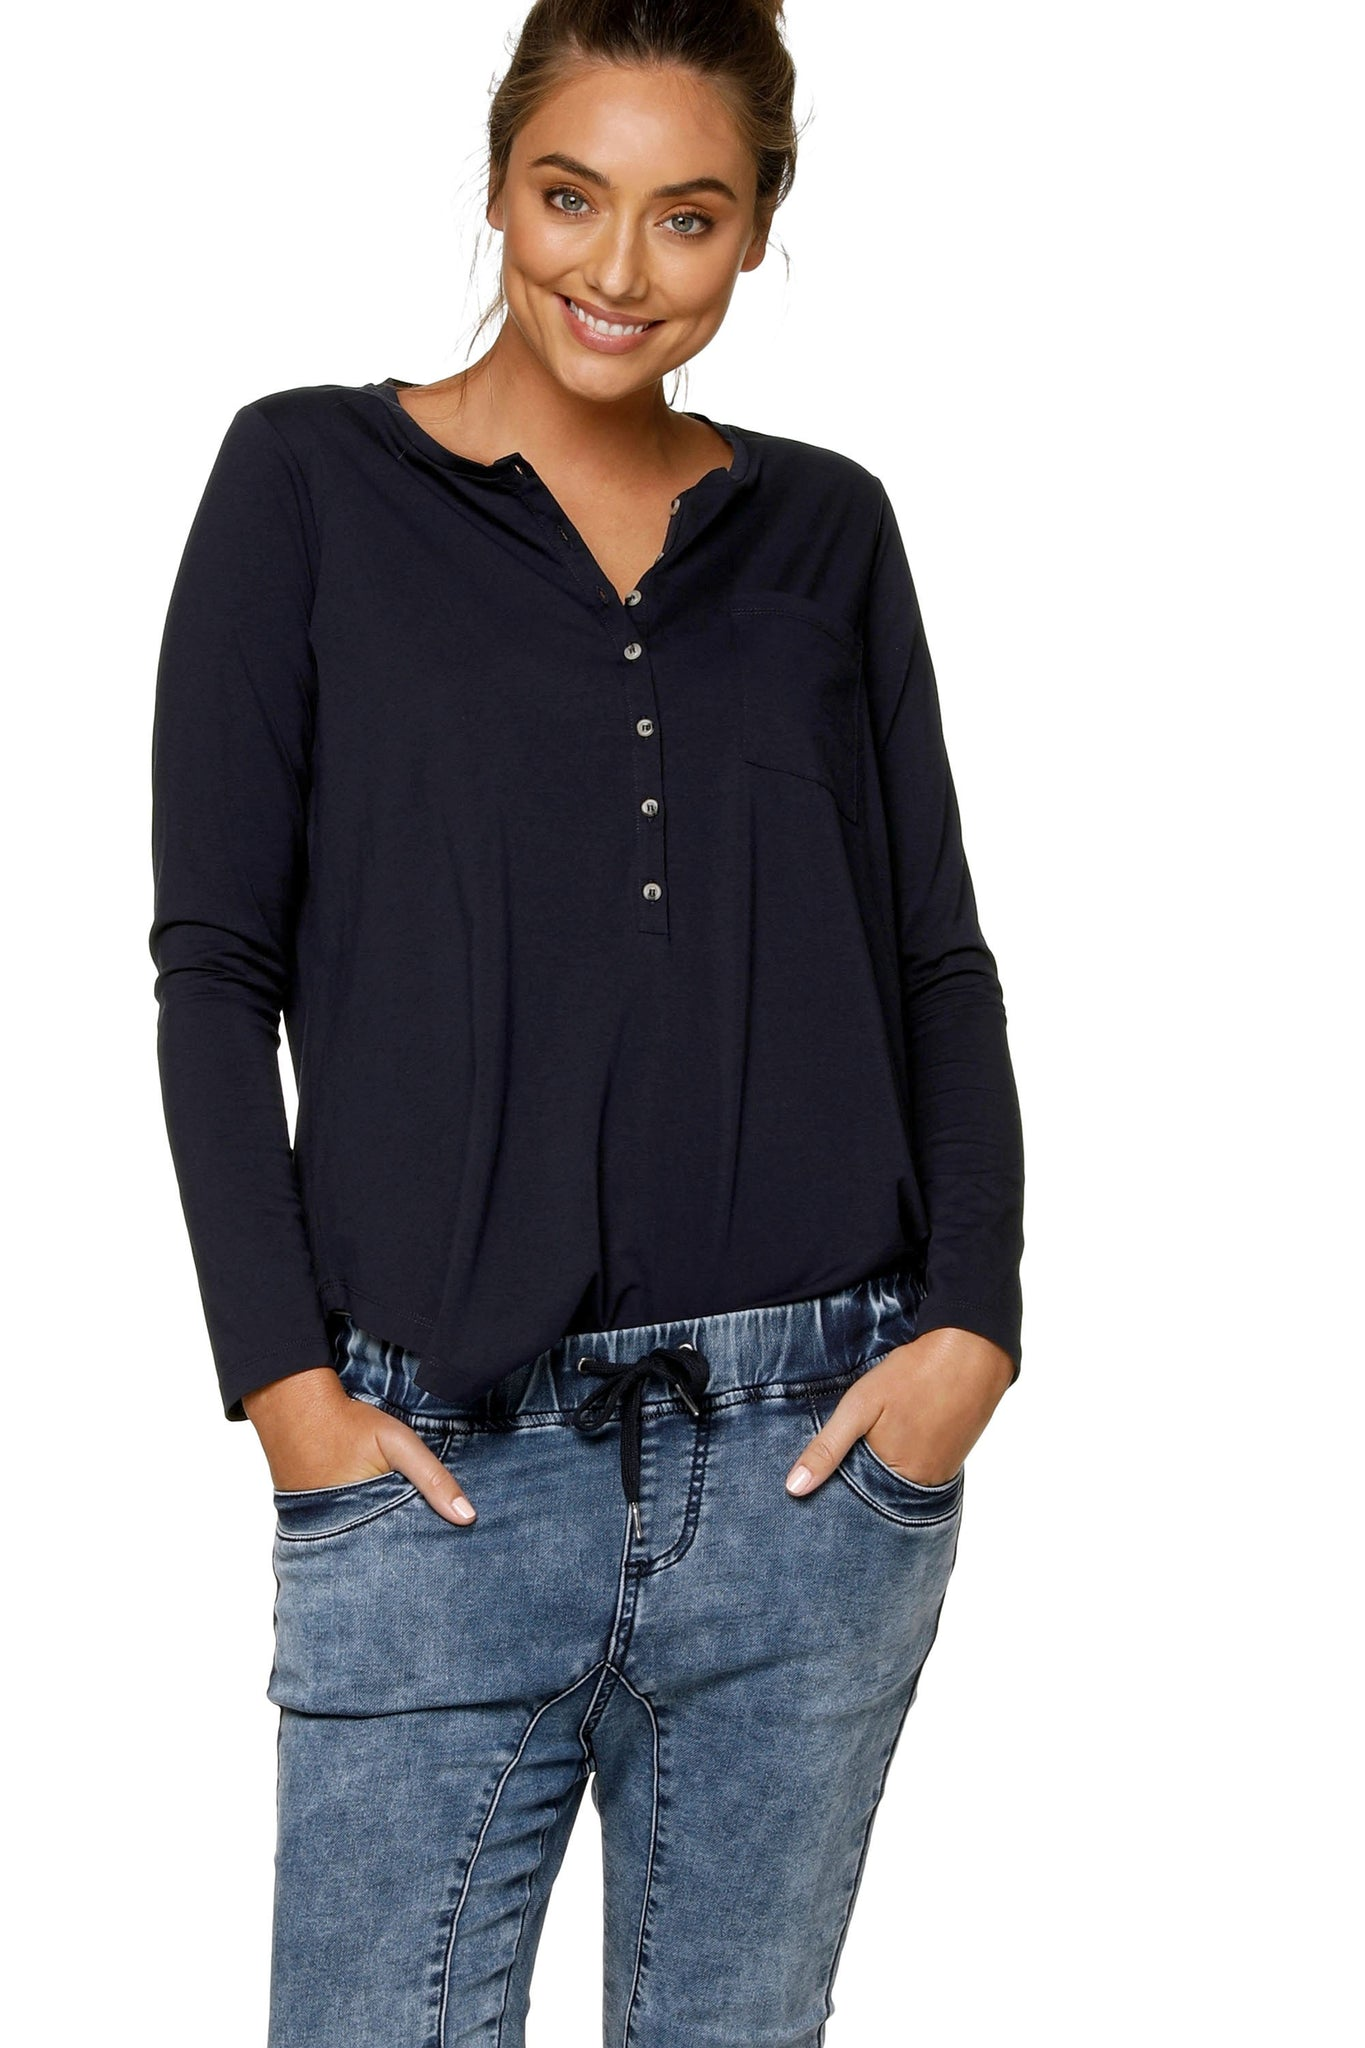 Maternity + Nursing Long Sleeve Top - Navy 9